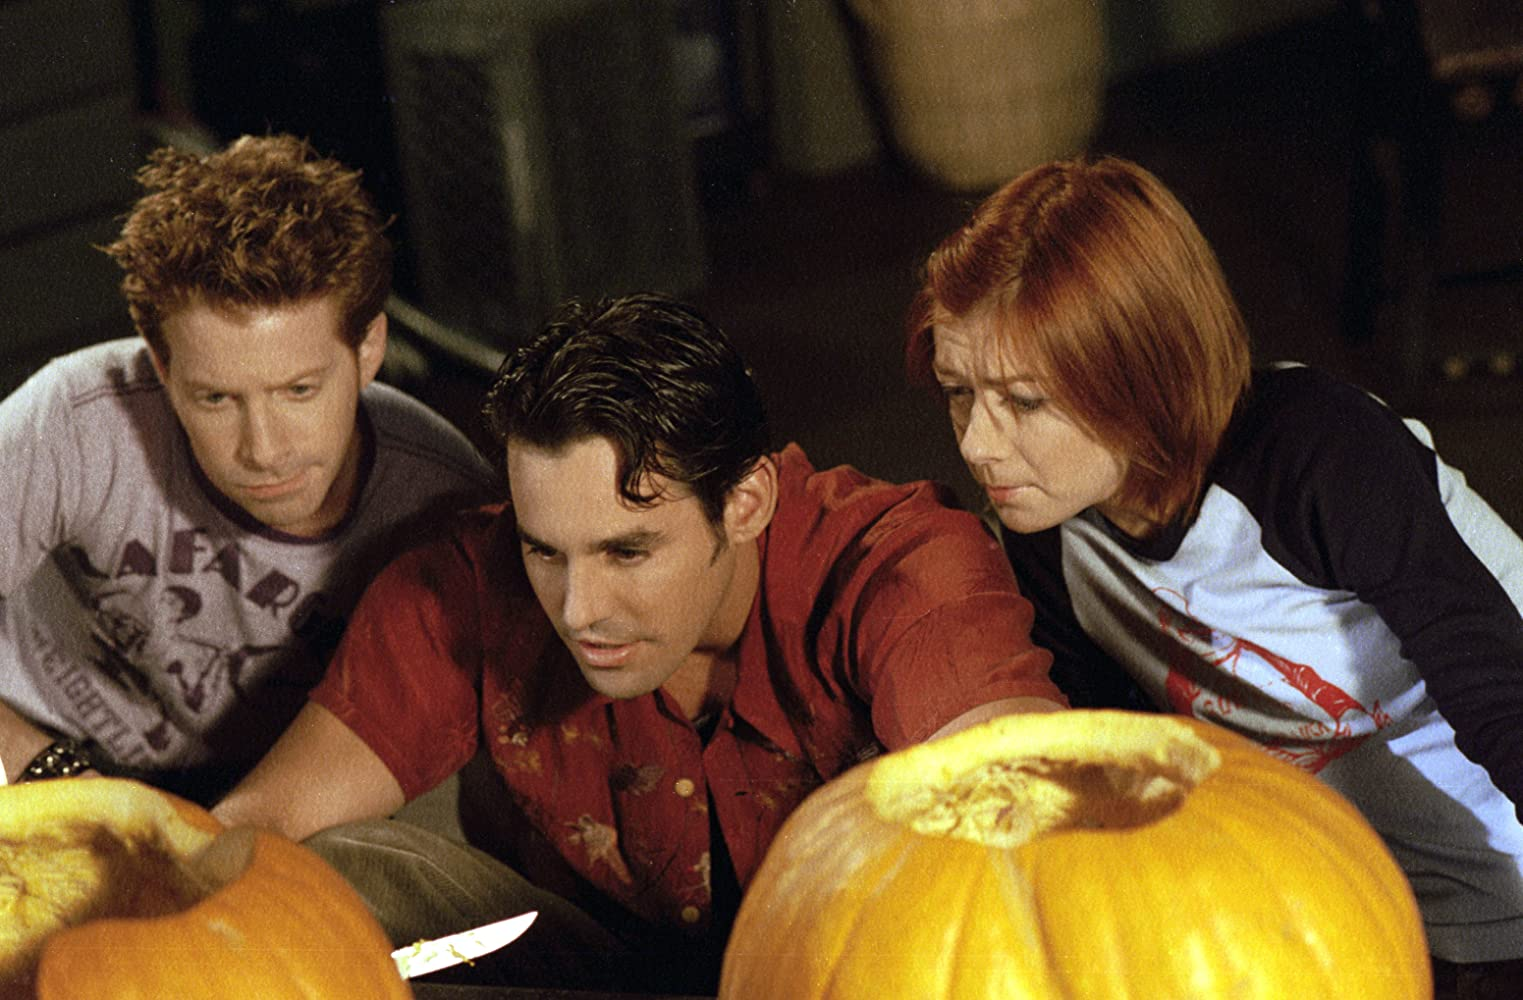 Seth Green, Alyson Hannigan, and Nicholas Brendon in Buffy the Vampire Slayer (1997). L-R Oz, Xander, and Willow are crouching behind some pumpkins with the tops cut off and the guts scooped out. Oz is a white man with spiky light brown hair and a brown graphic tee on, whilst Xander has slicked back dark brown hair and a red button-up shirt on, holding a knife. Willow has short red hair and a black and white baseball top on. They are all staring at the pumpkin in front of them.